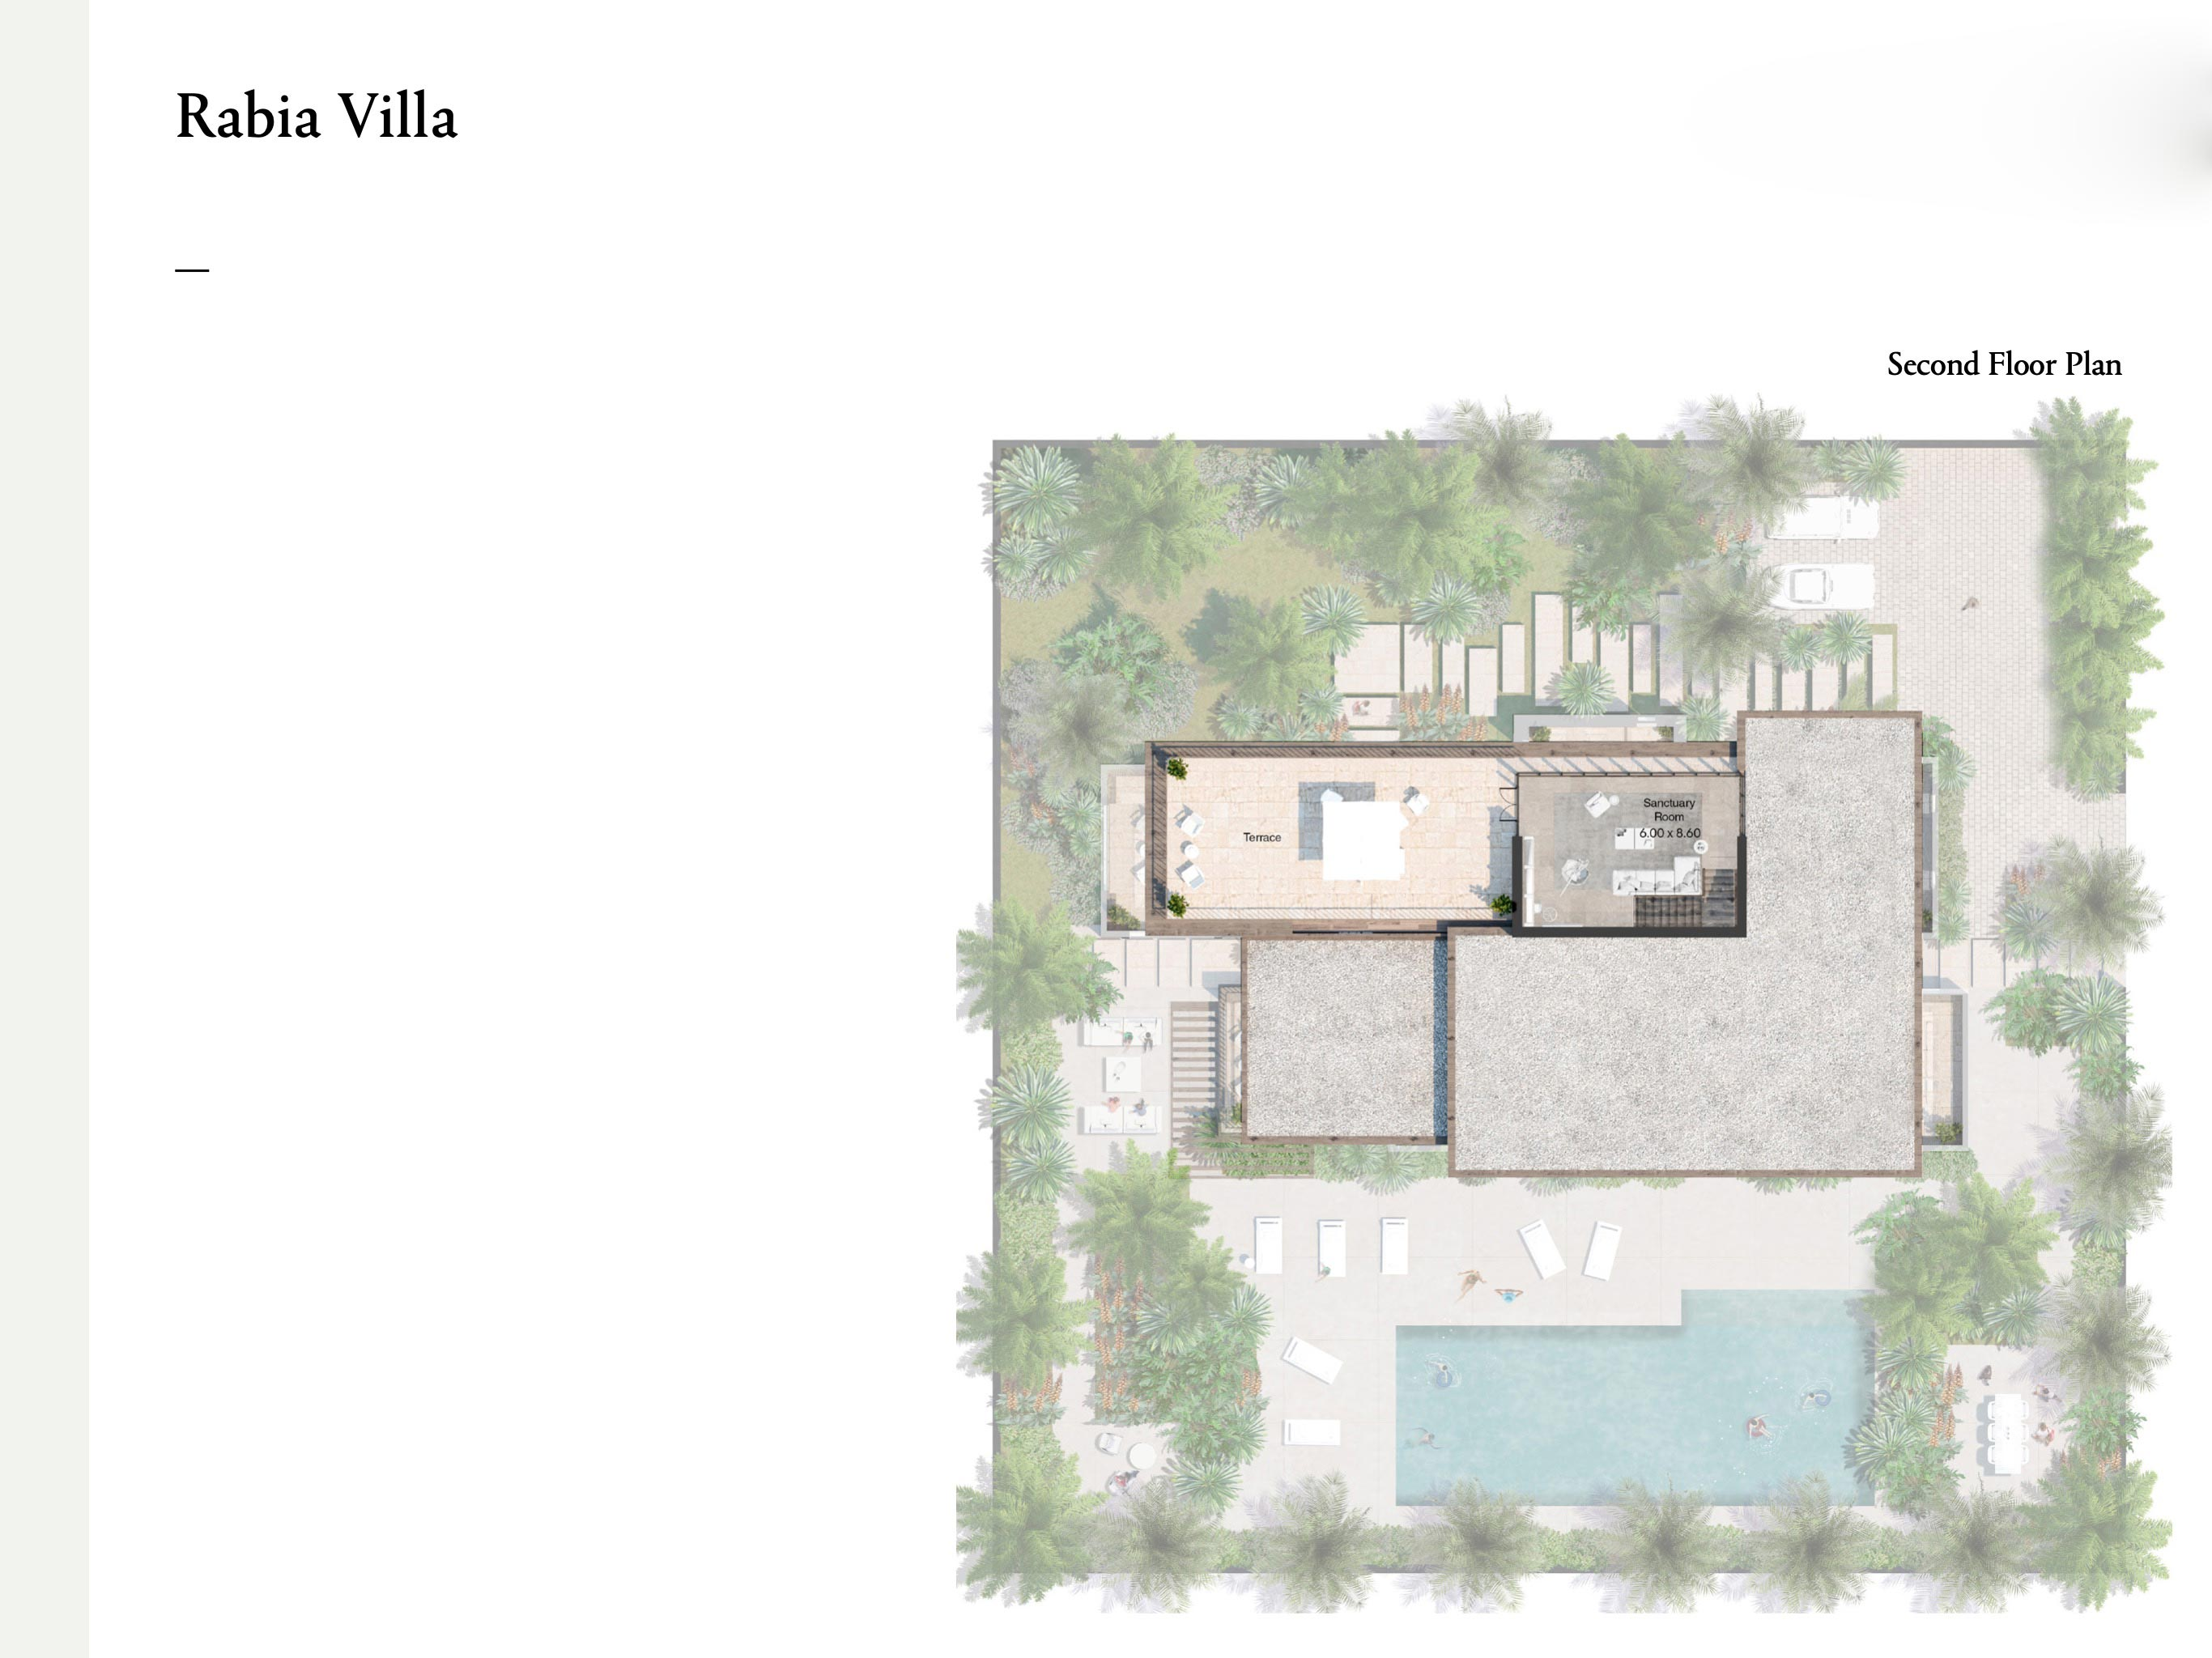 7-Bedroom-Rabia-Villas-Size-1126-sqm